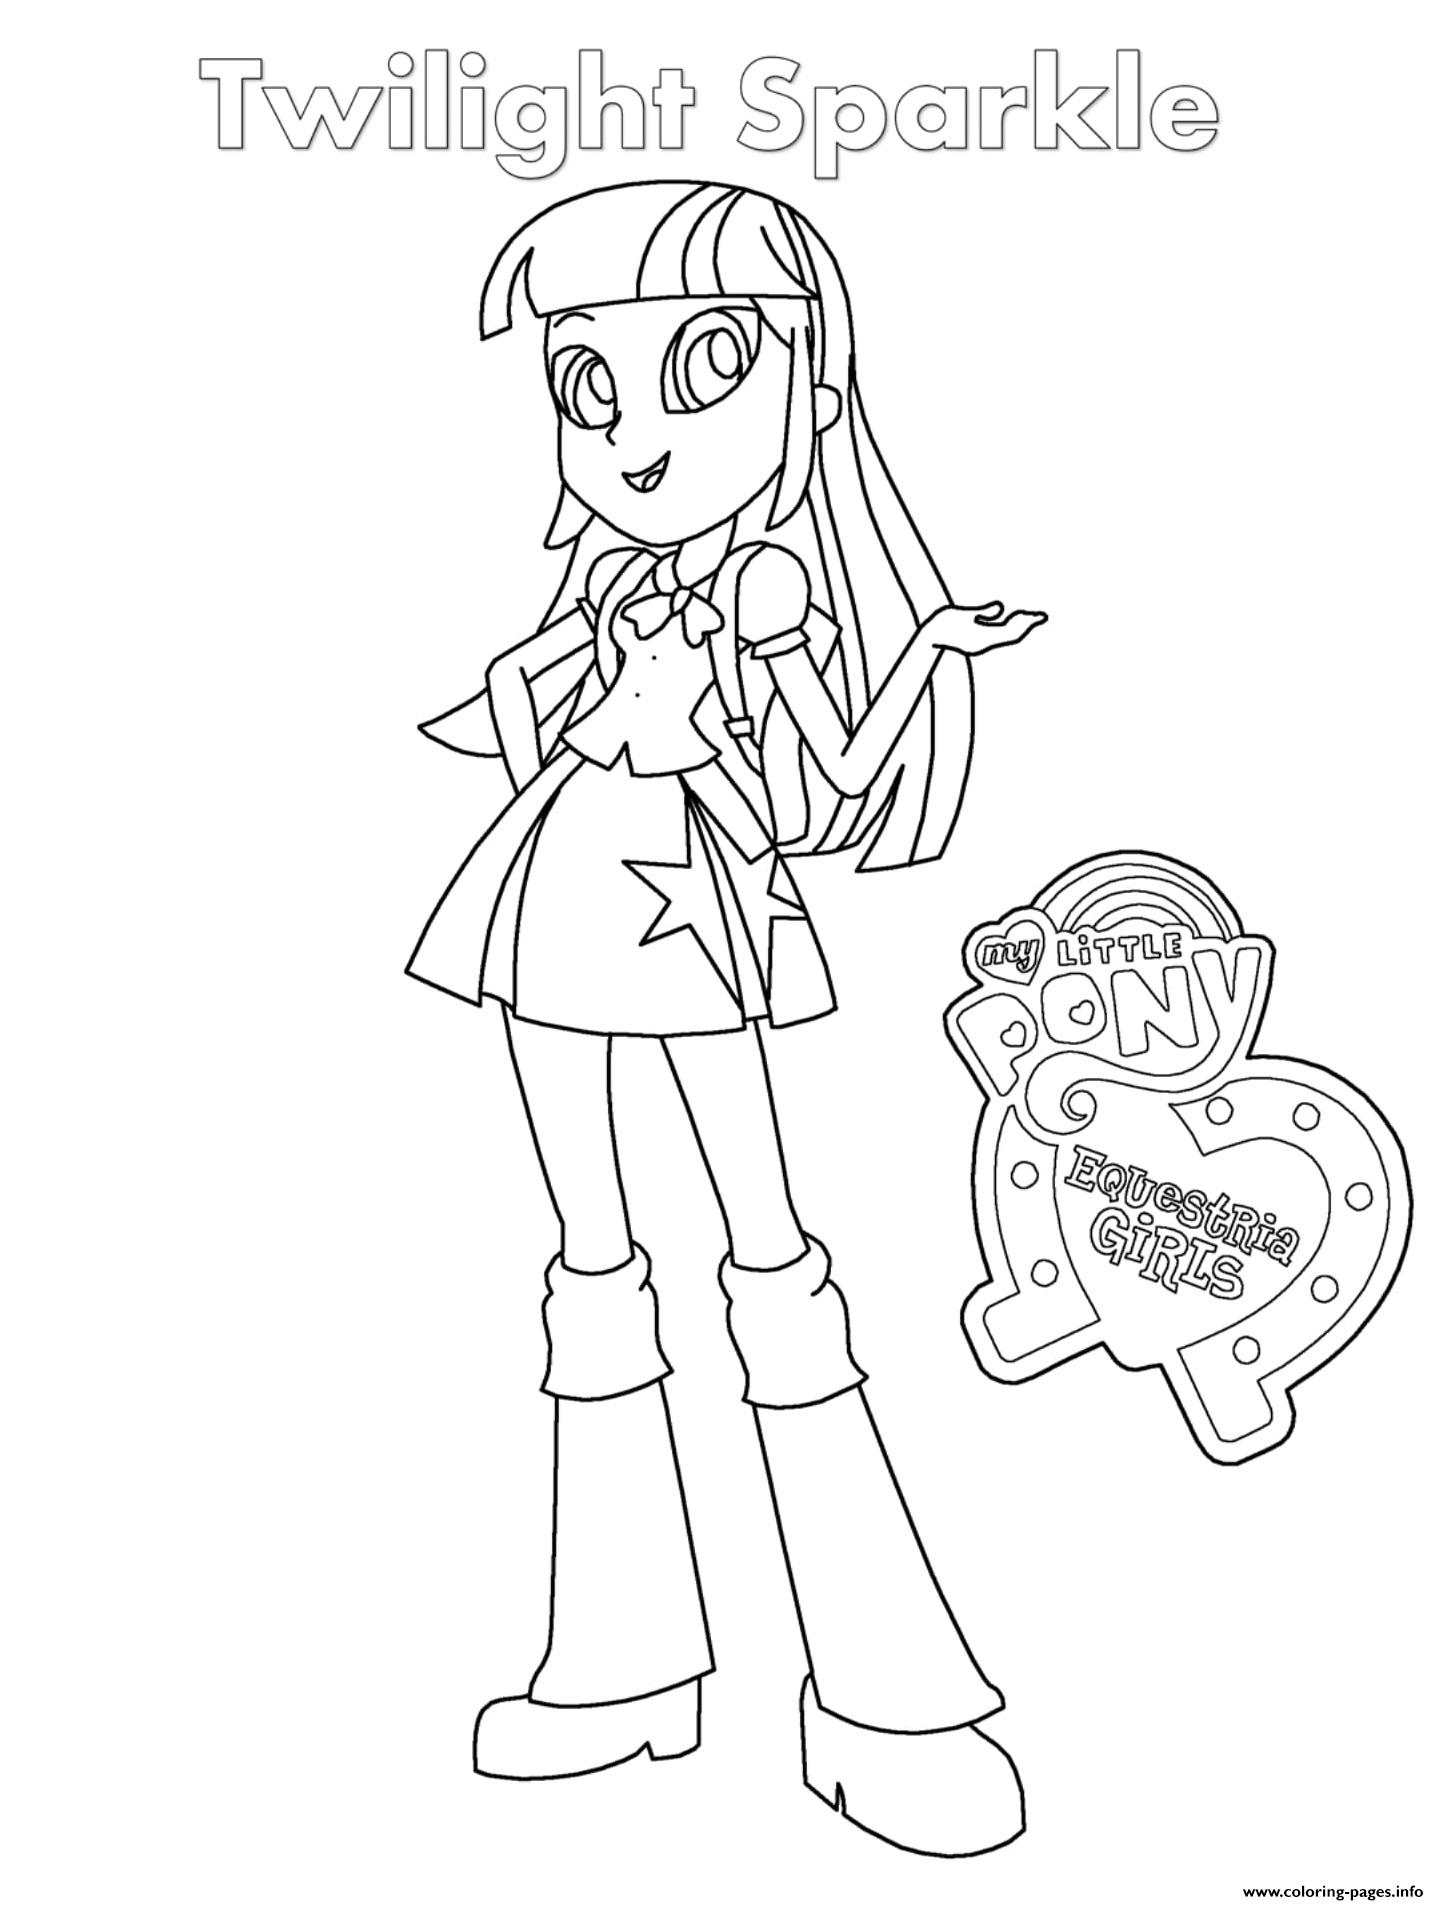 Equestria Girls Twilight Sparkle coloring pages